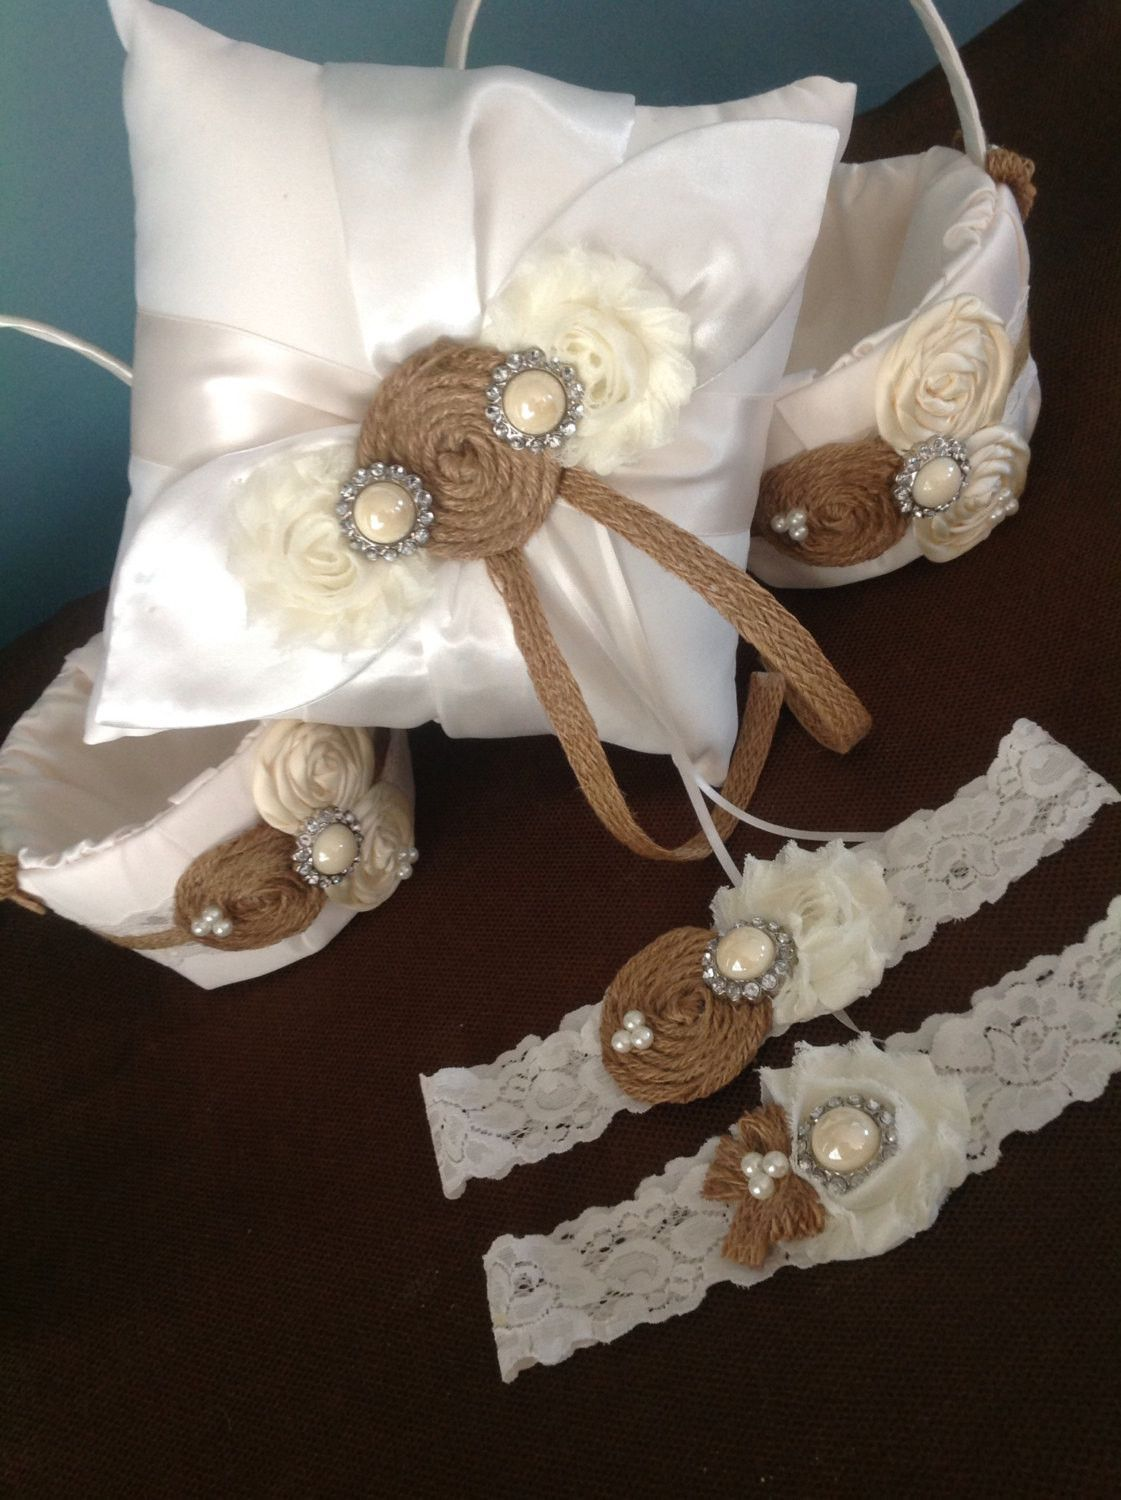 Deluxe rustic burlap wedding set - 2 flower girl baskets , 1 ring bearer pillow , vintage lace wedding garter